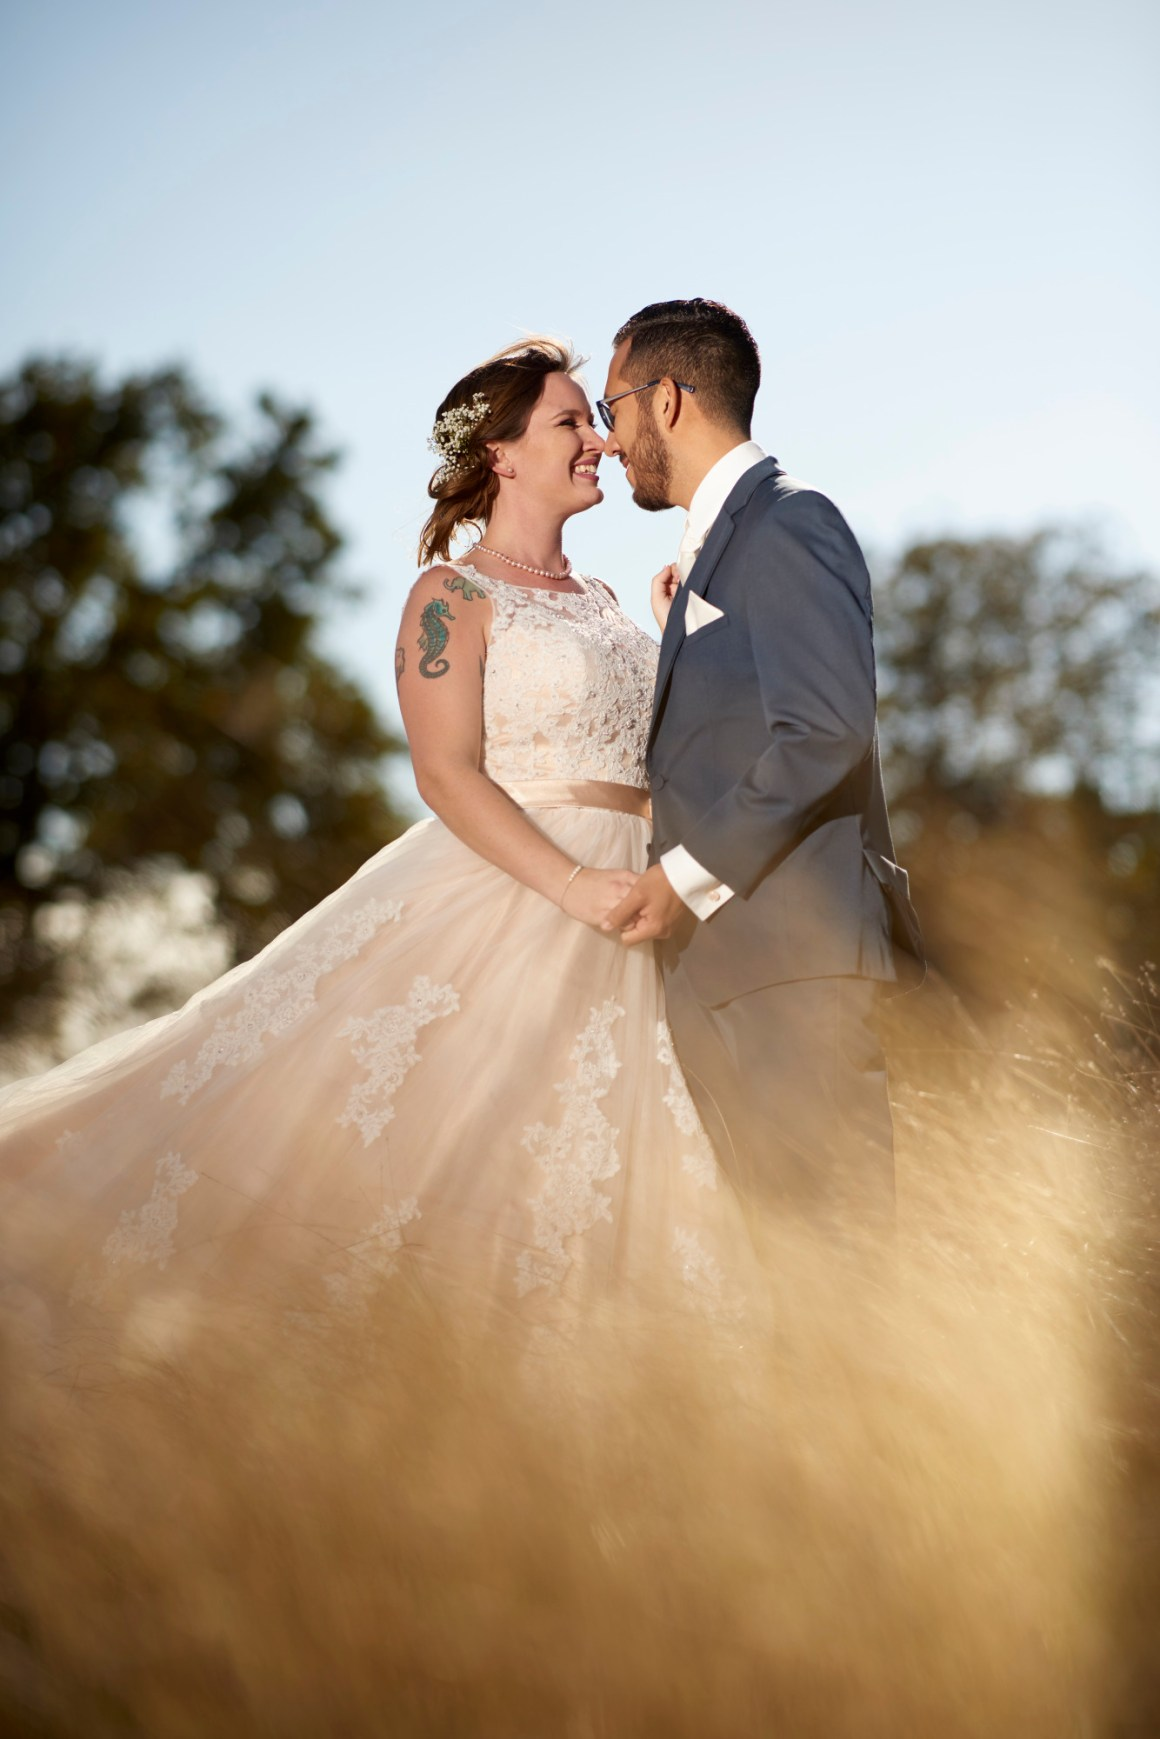 Epic Portrait, Wedding, Memory Lane, Dripping Springs, Memory Lane Wedding